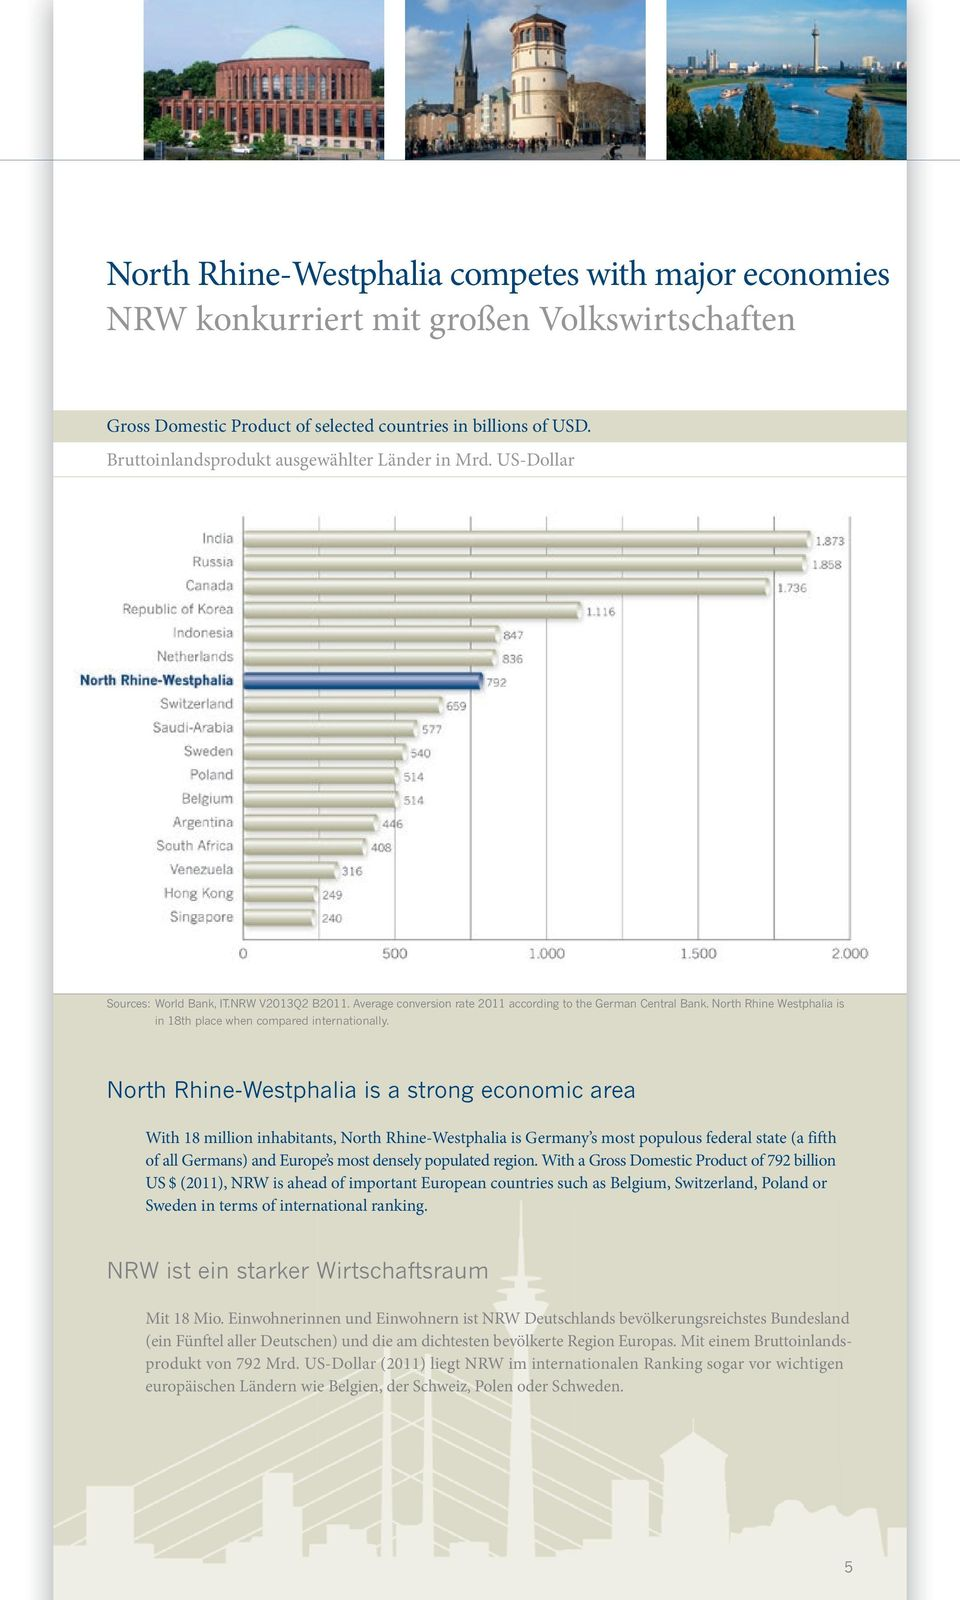 North Rhine Westphalia is in 18th place when compared internationally.